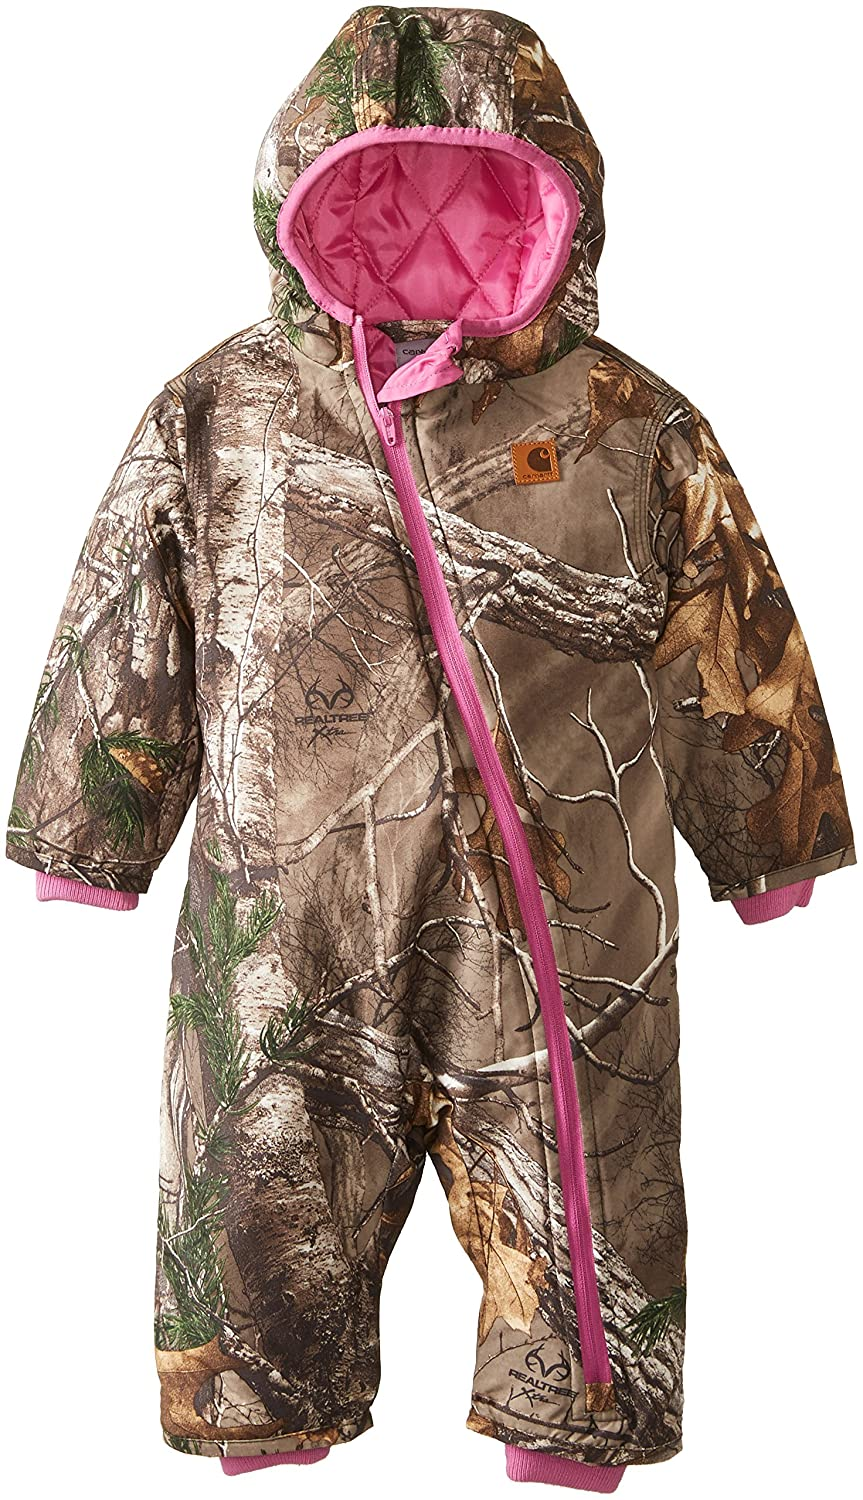 Carhartt Baby Girls' Camo Snowsuit Real Tree 6 Months CM9636